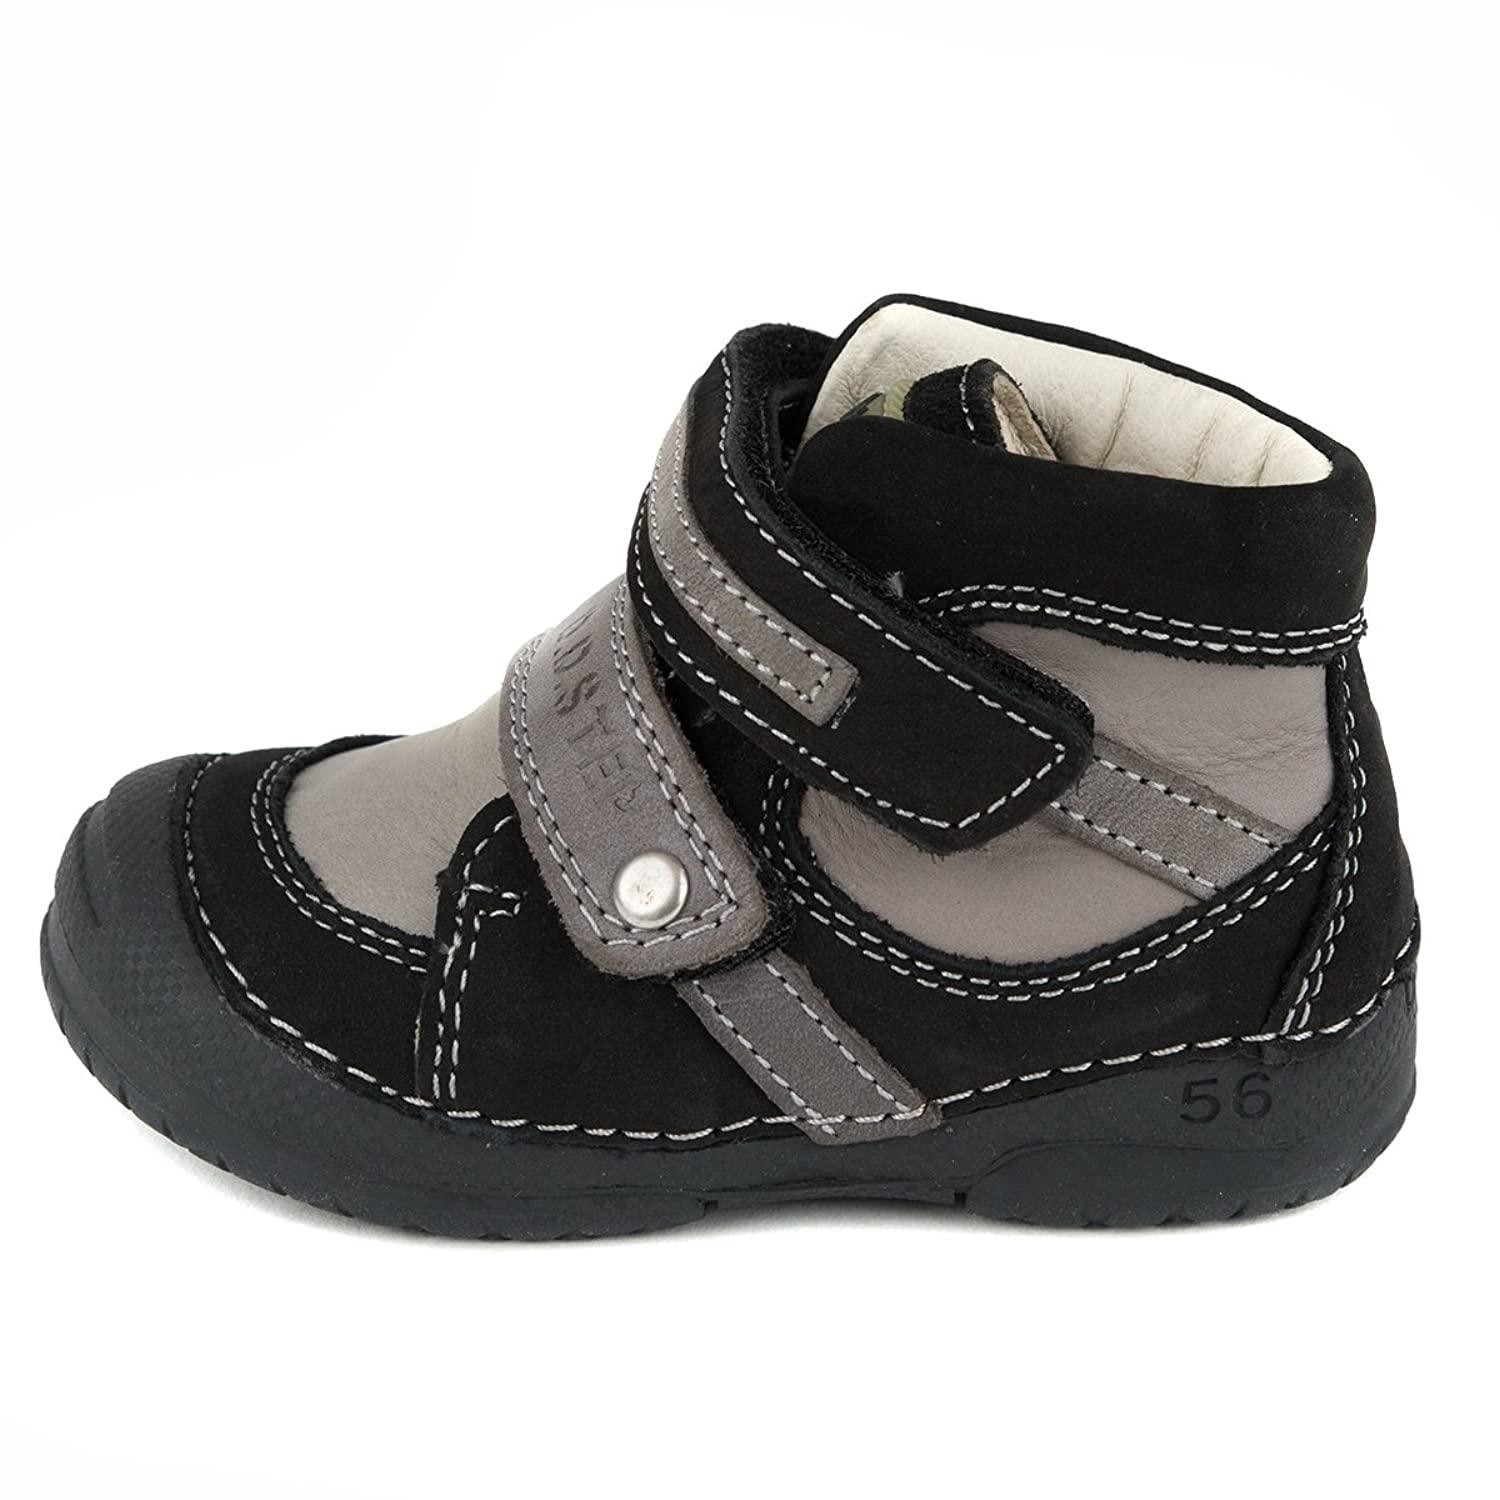 D.D. Step Boys' boots, genuine leather, black and grey, toddler size (038- 215A): Amazon.ca: Shoes & Handbags